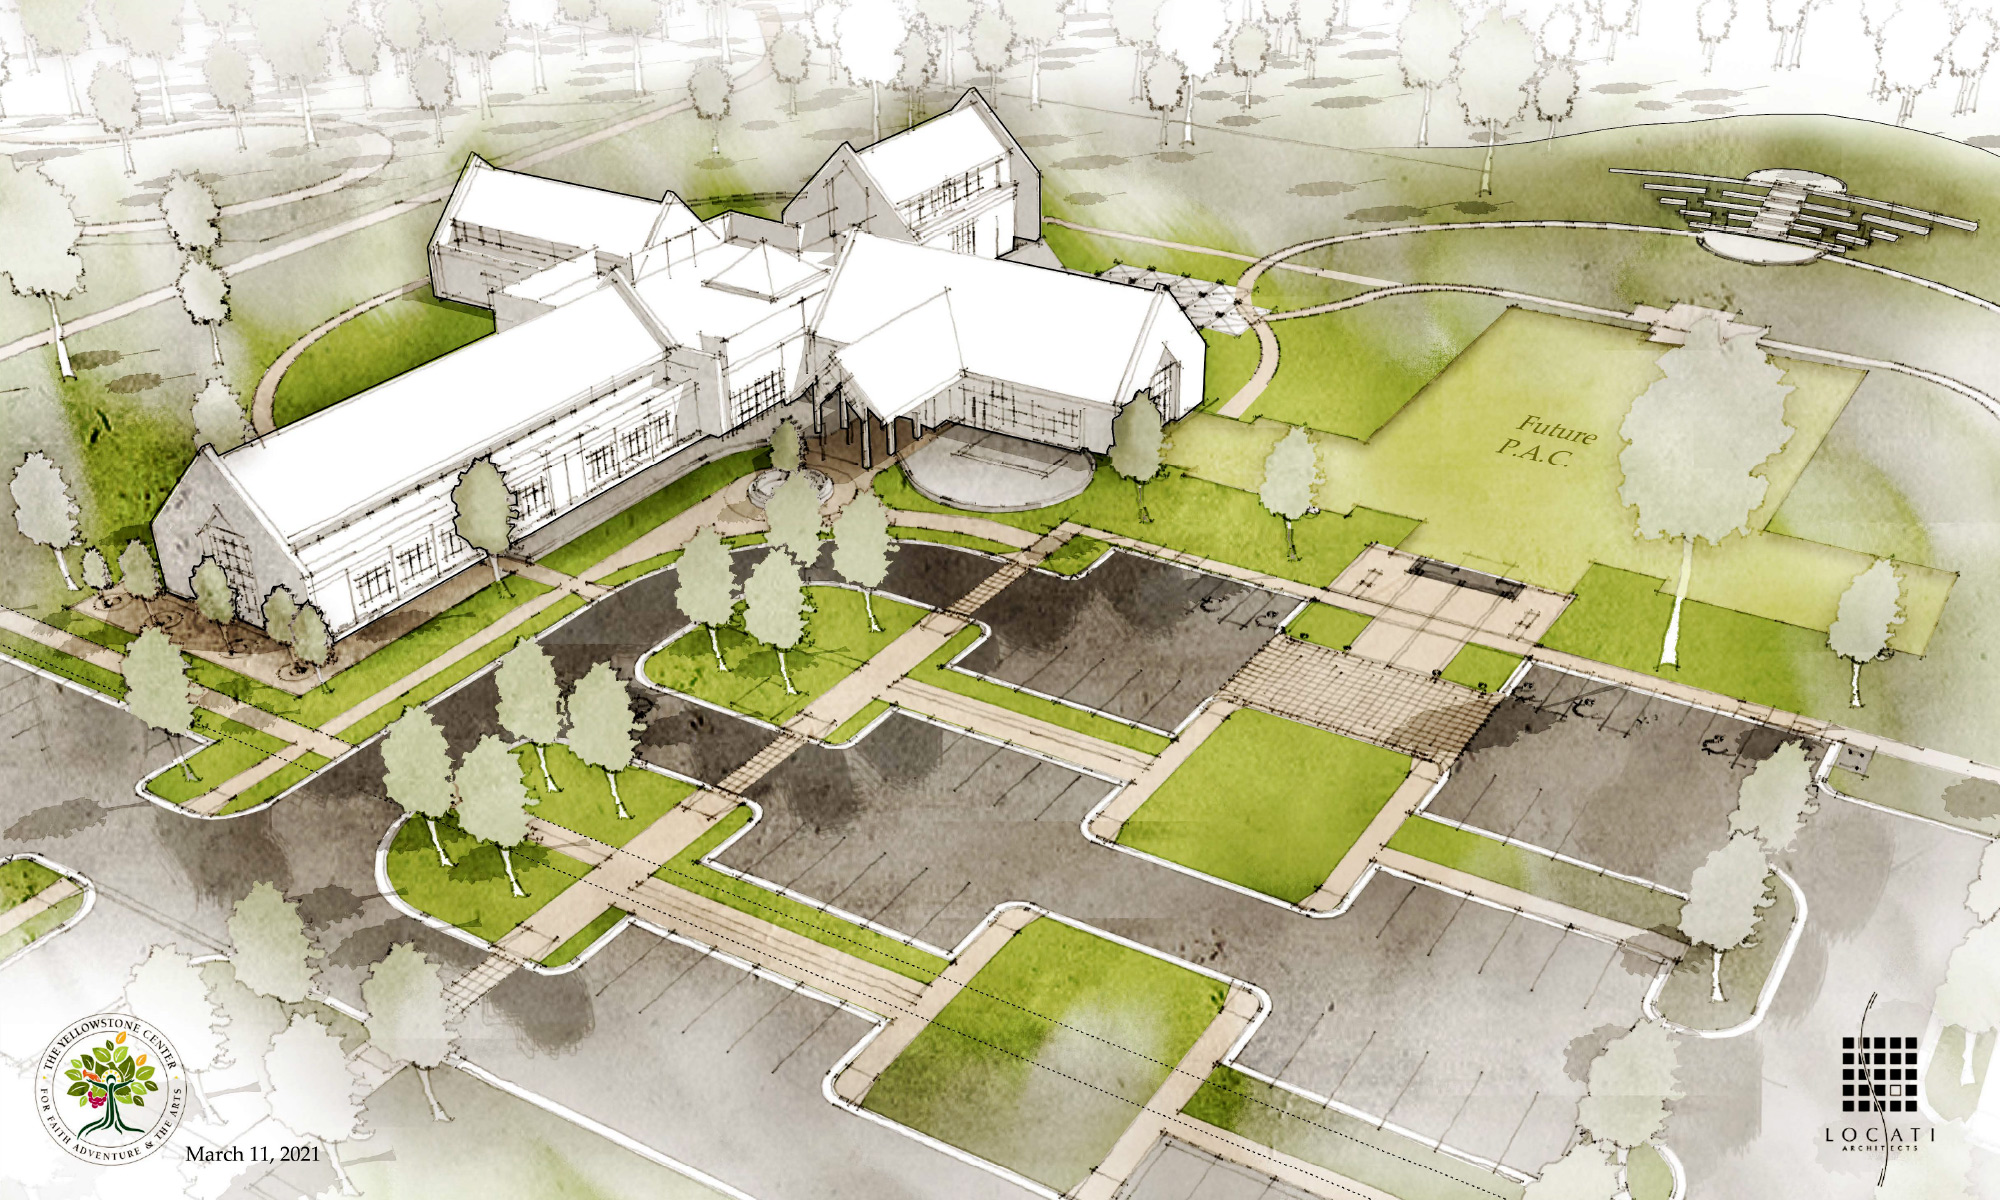 Architect's drawing of proposed YTI building